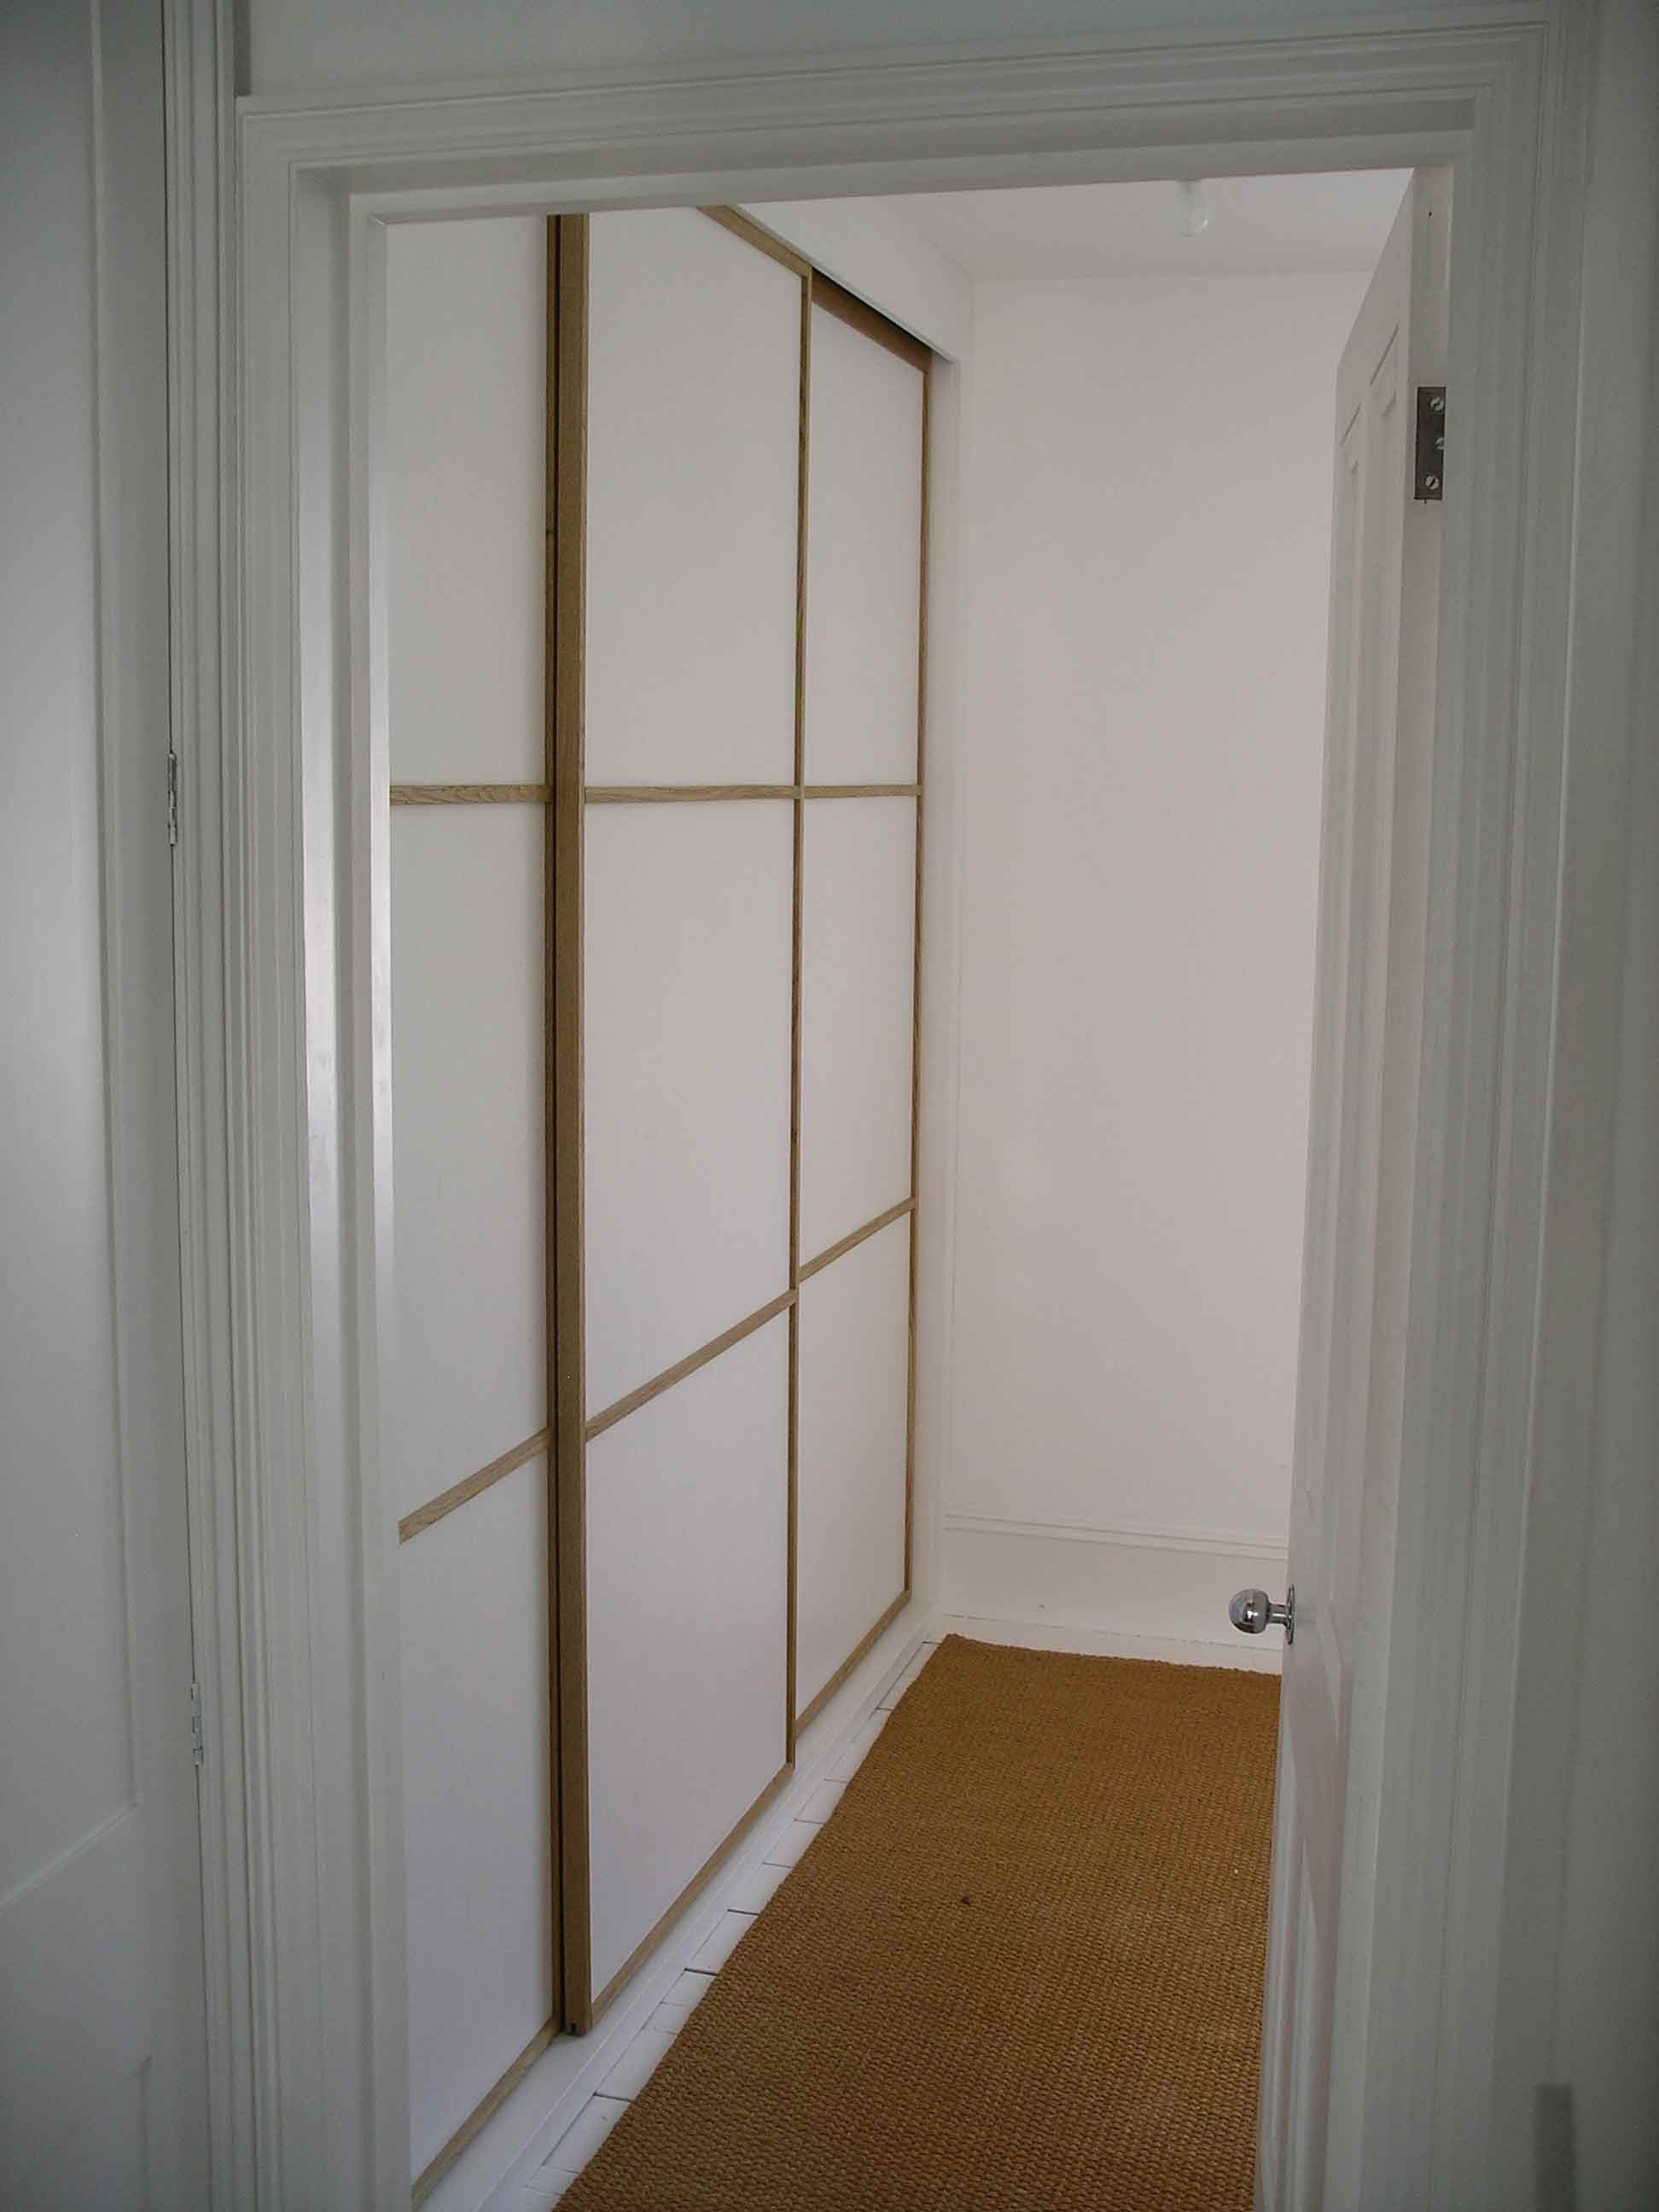 Japanese Sliding Doors Bespoke Made Wardrobe By Peter Henderson Furniture Brighton Uk